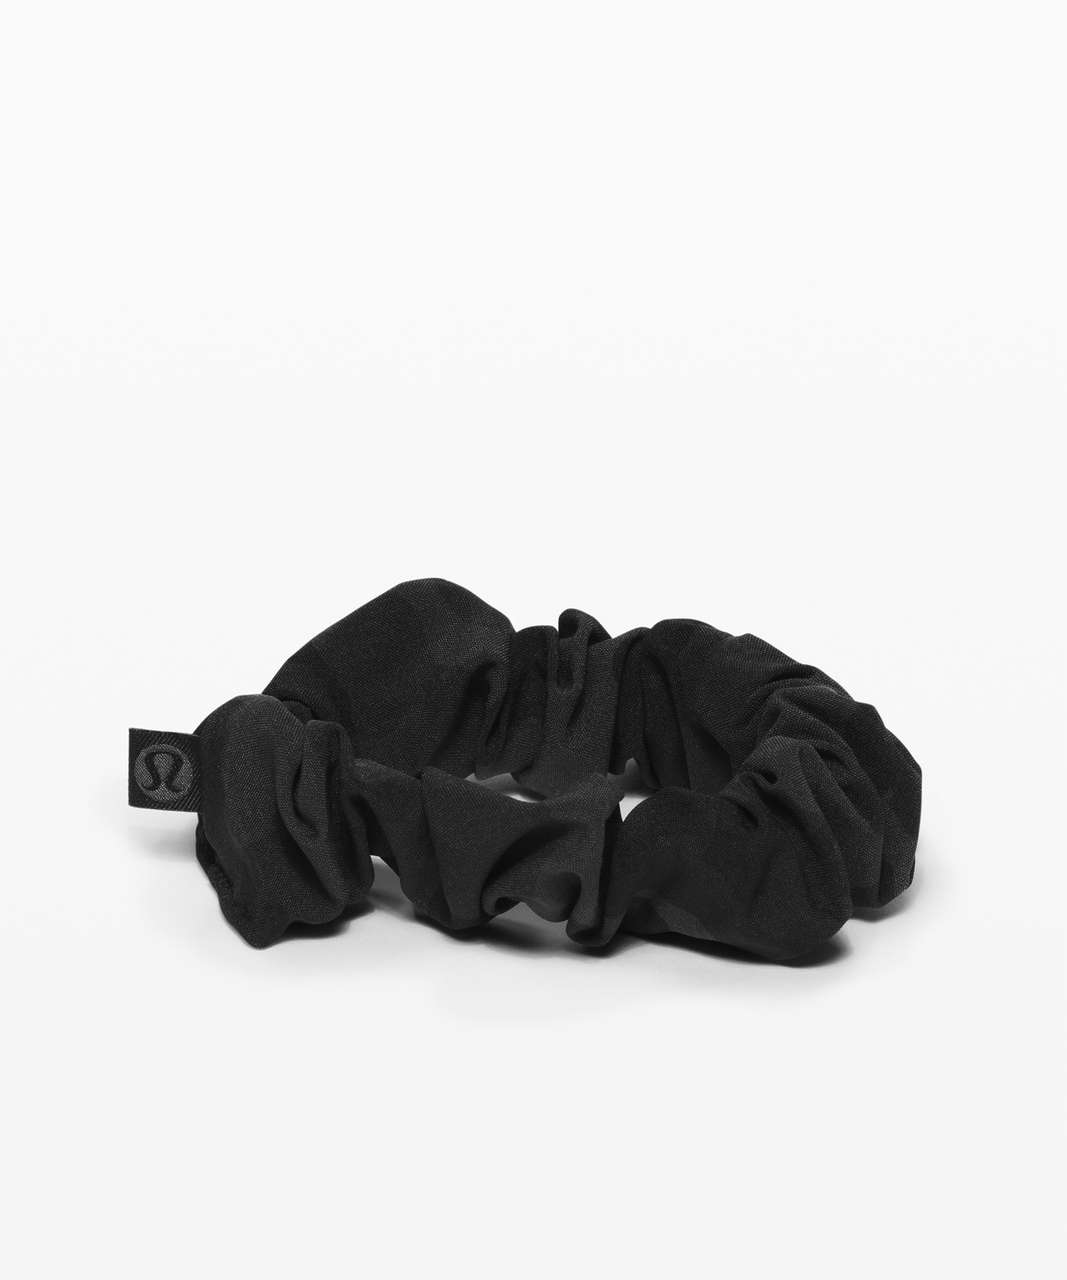 Lululemon Uplifting Scrunchie - Incognito Camo Multi Grey